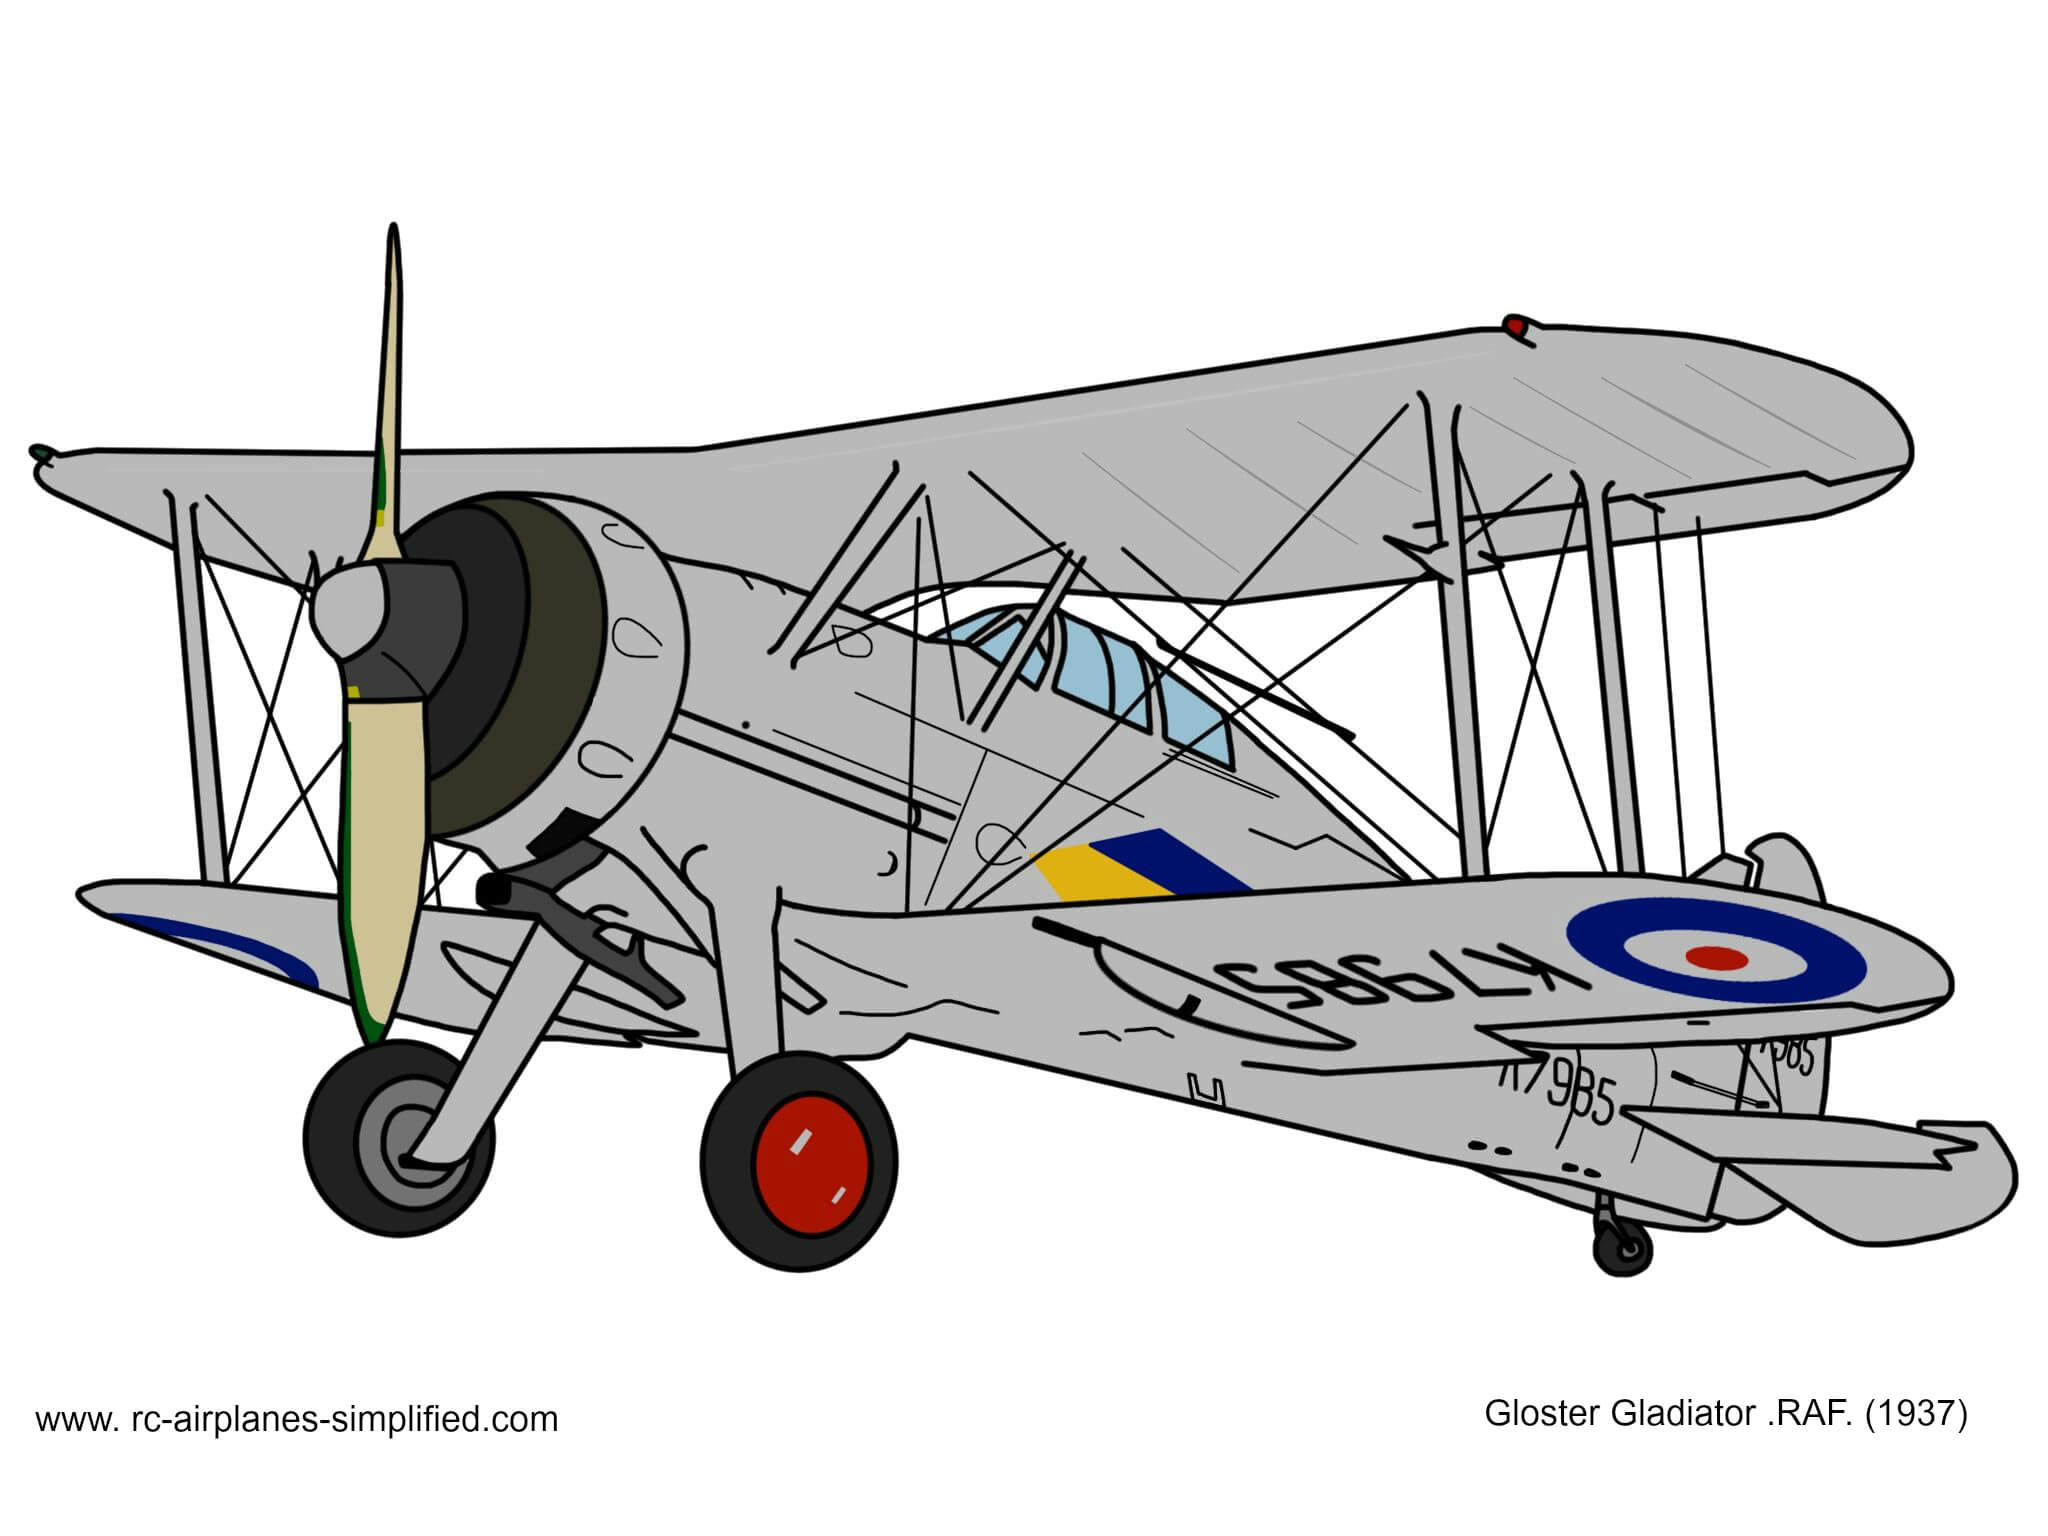 Gloster Gladiator original artwork by Kasey Dixon